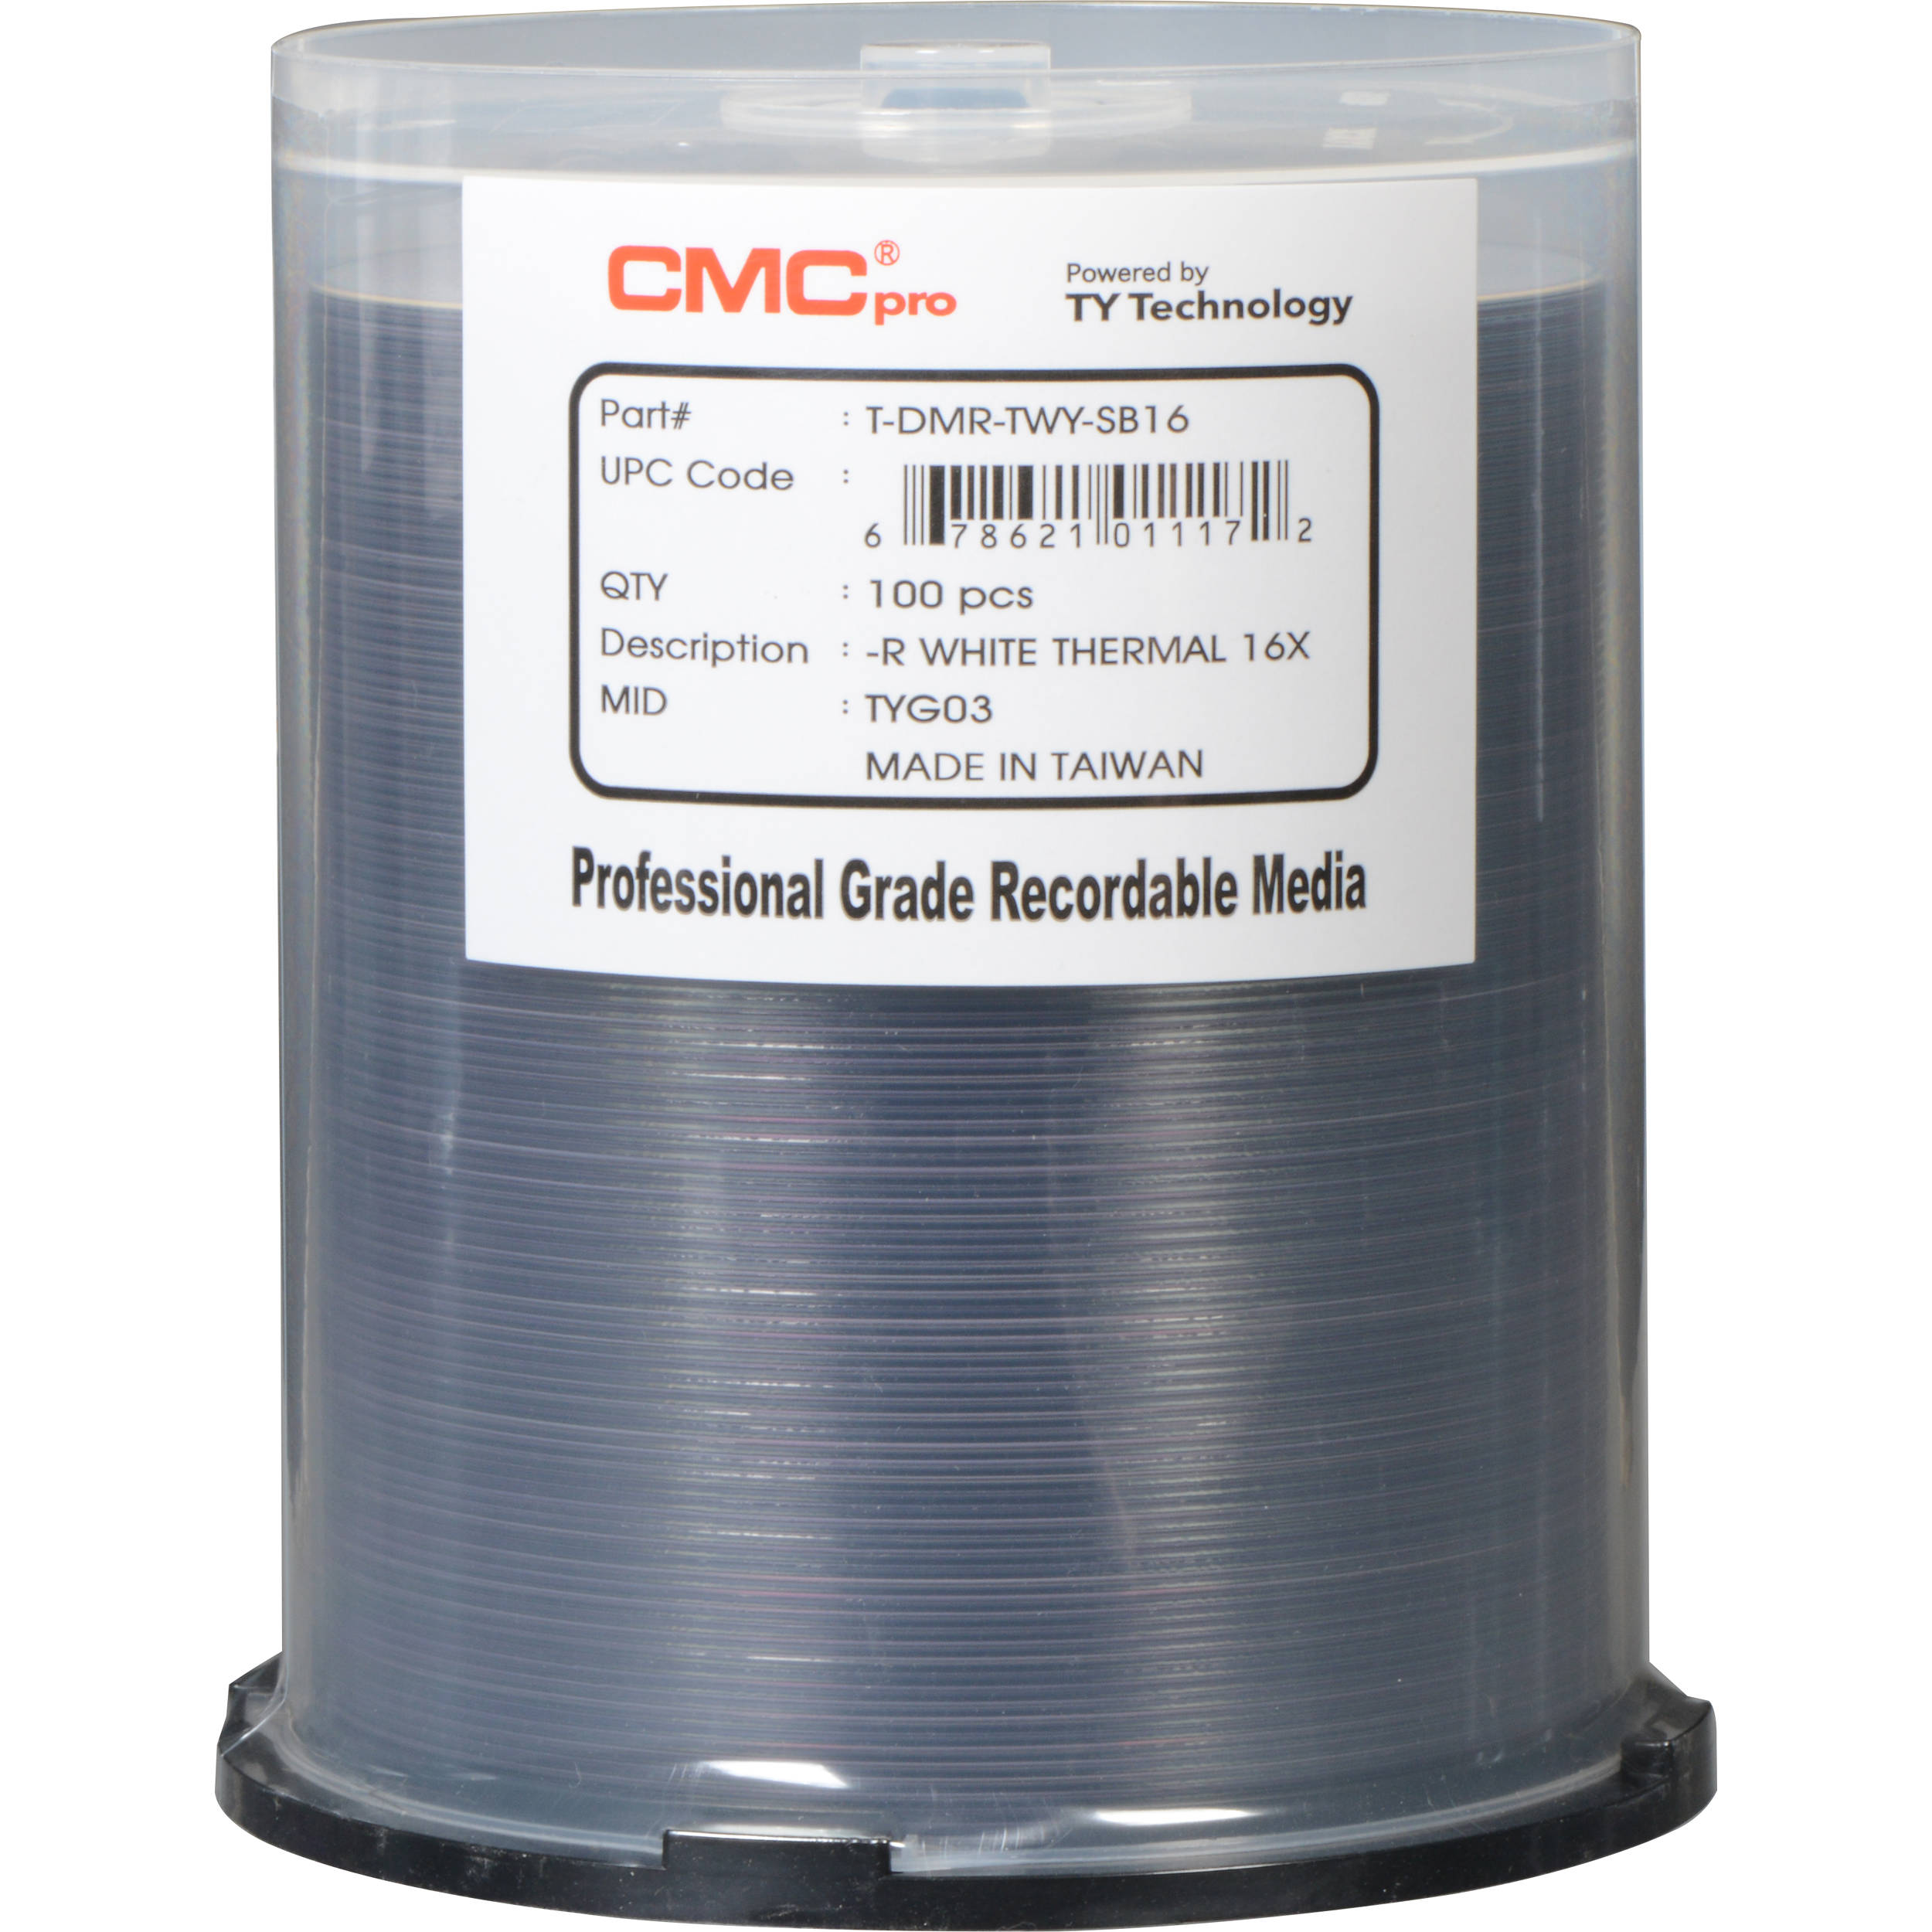 graphic about Dvd R Printable named CMC Qualified 4.7GB DVD-R 16x White Thermal Printable Disc (100-Pack)